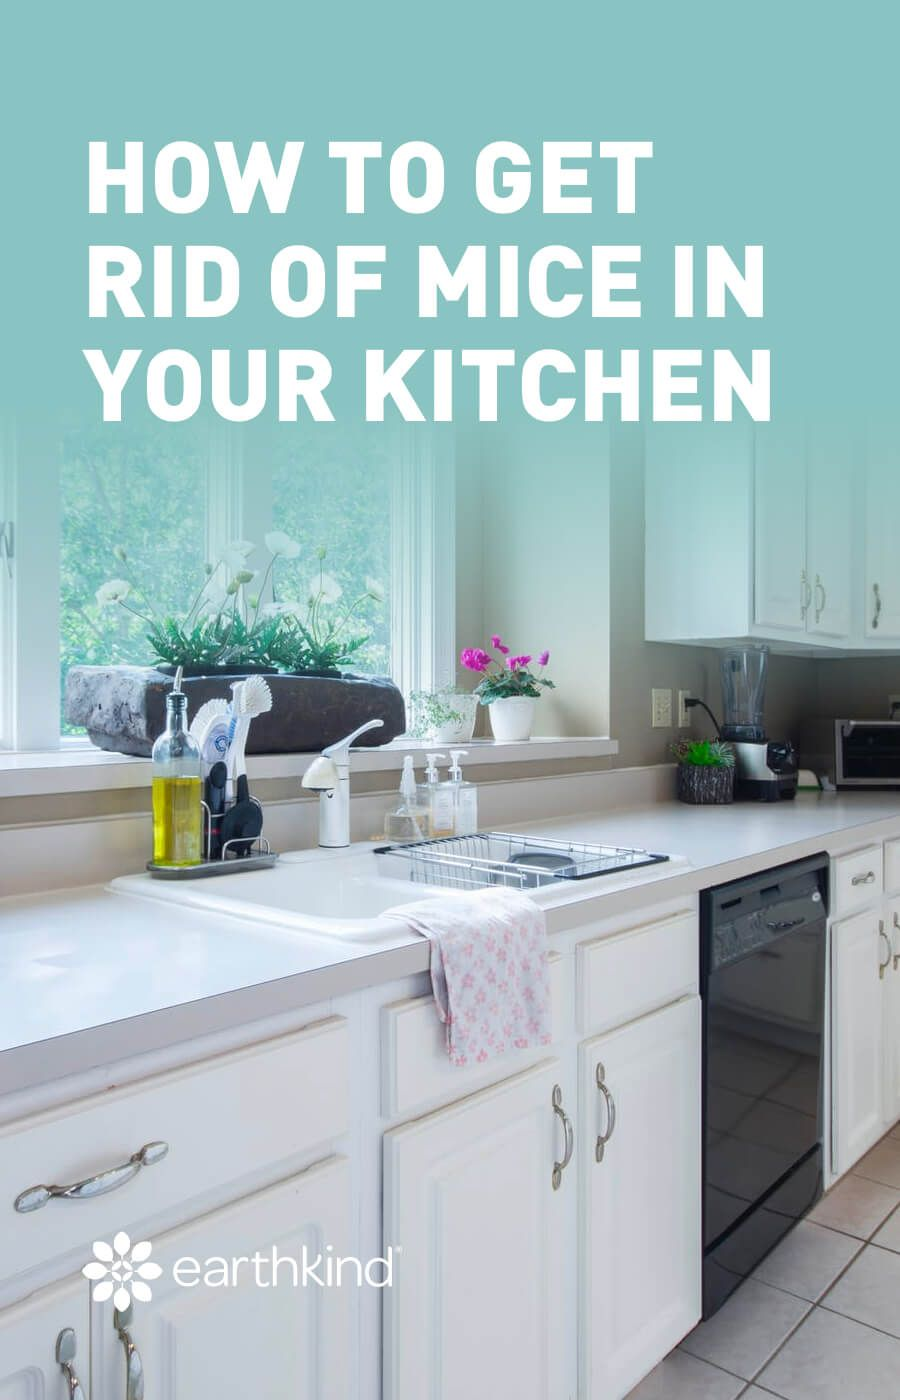 How To Get Rid Of Mice In The Kitchen In 2020 Getting Rid Of Mice Kitchen Homesteading Diy Projects